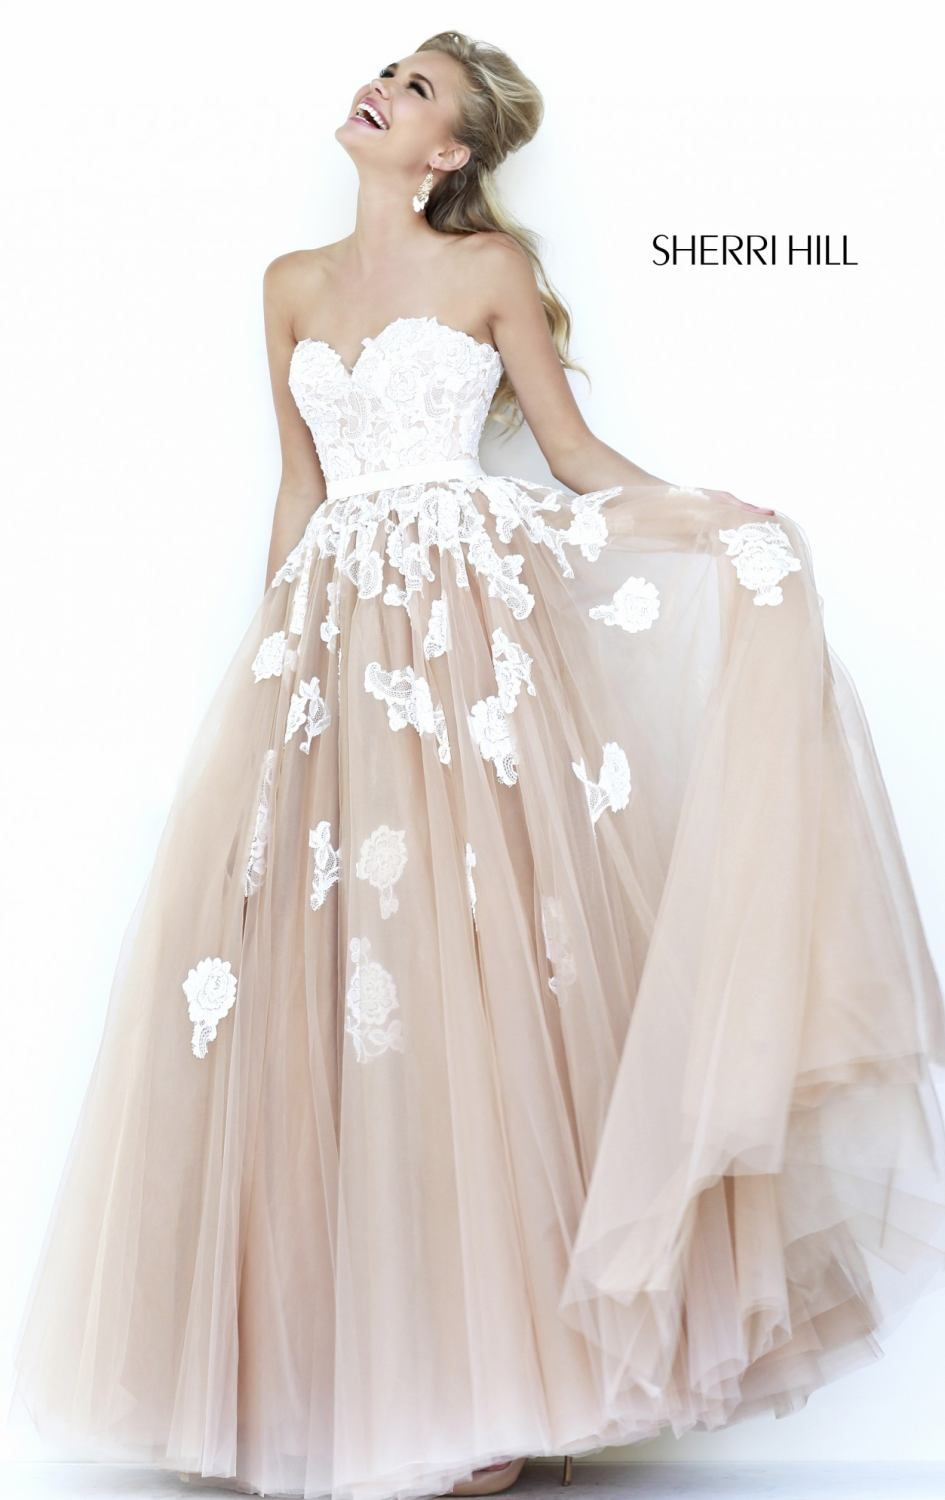 Fashion Dresses Archives | Pinterest | Wedding dress, Prom and Lights